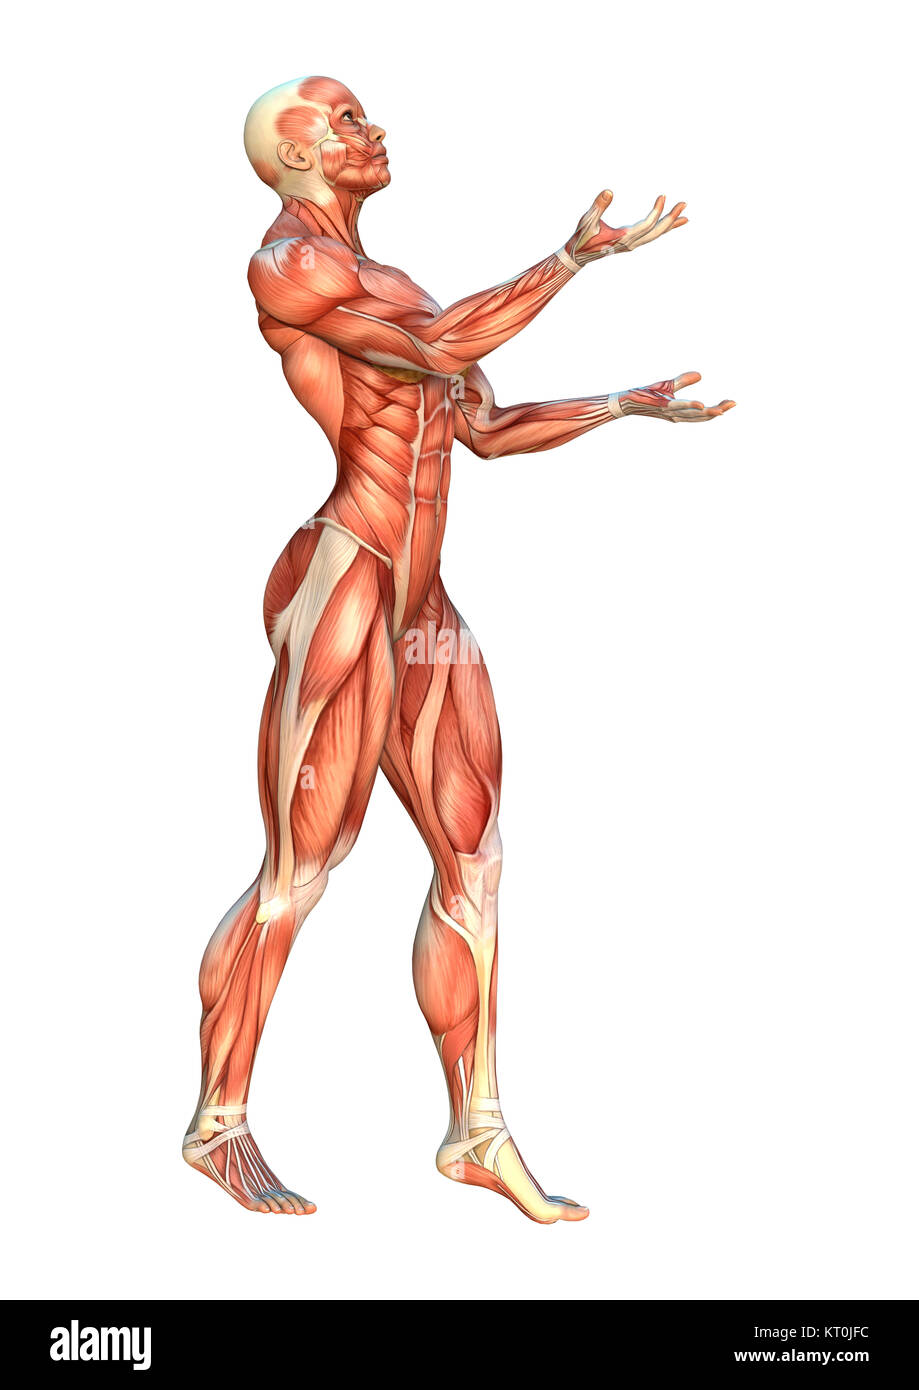 3D Rendering Muscle Maps - Stock Image